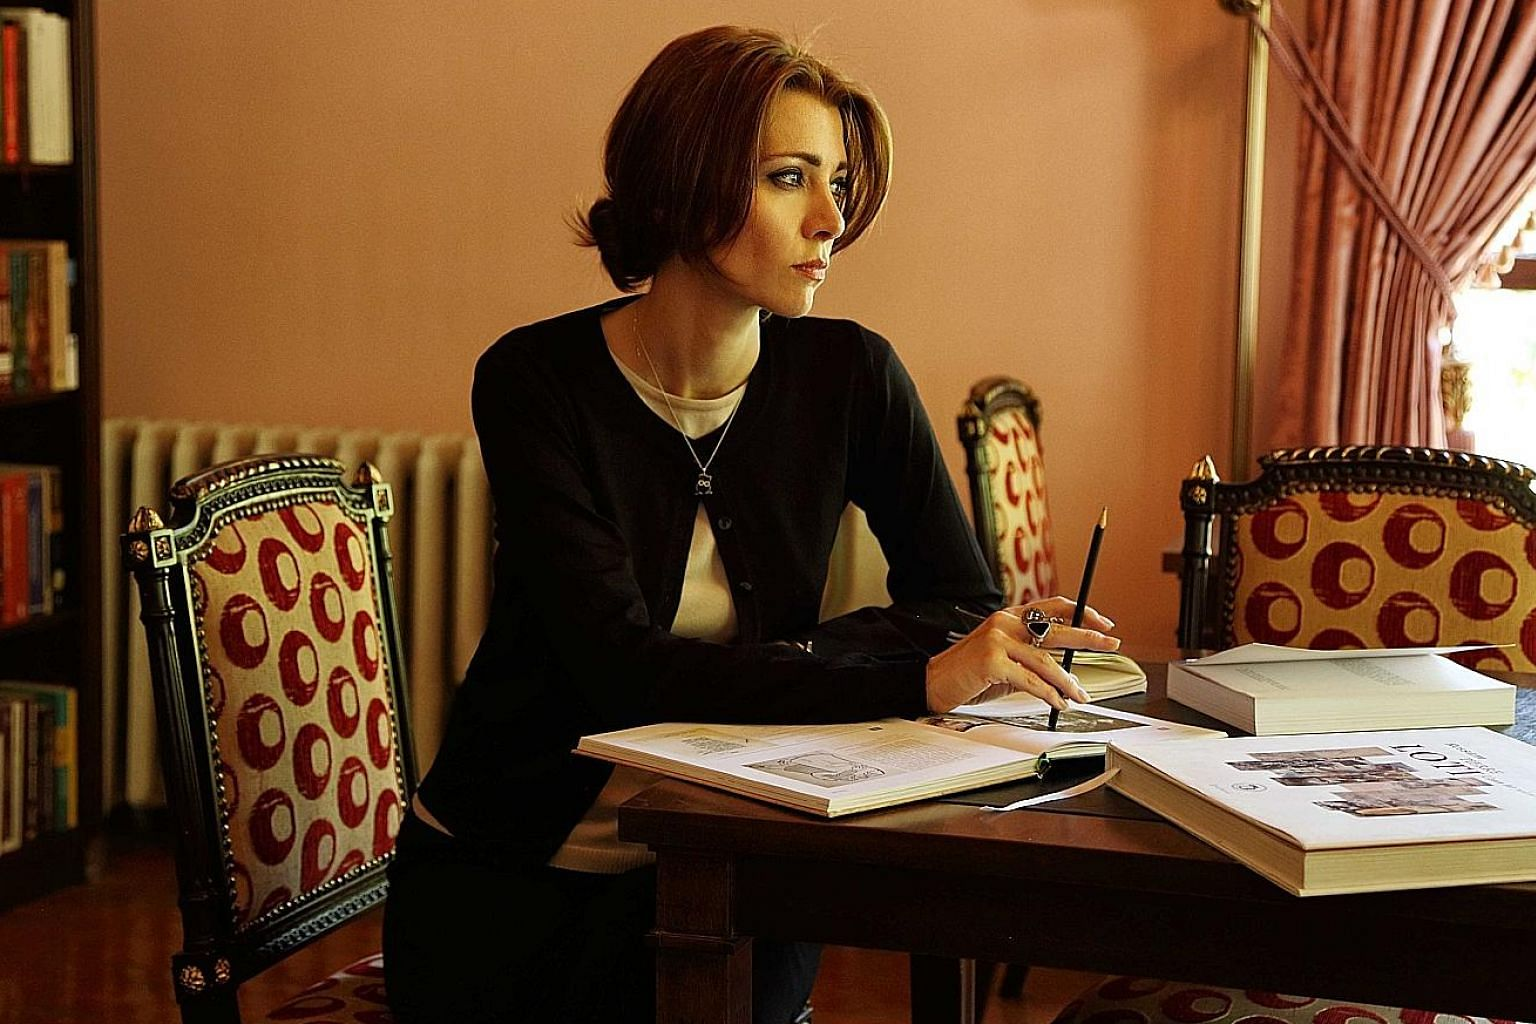 Turkish author Elif Shafak's latest novel, Three Daughters Of Eve, is set, in part, in today's Istanbul and explores the conflict among three young women.